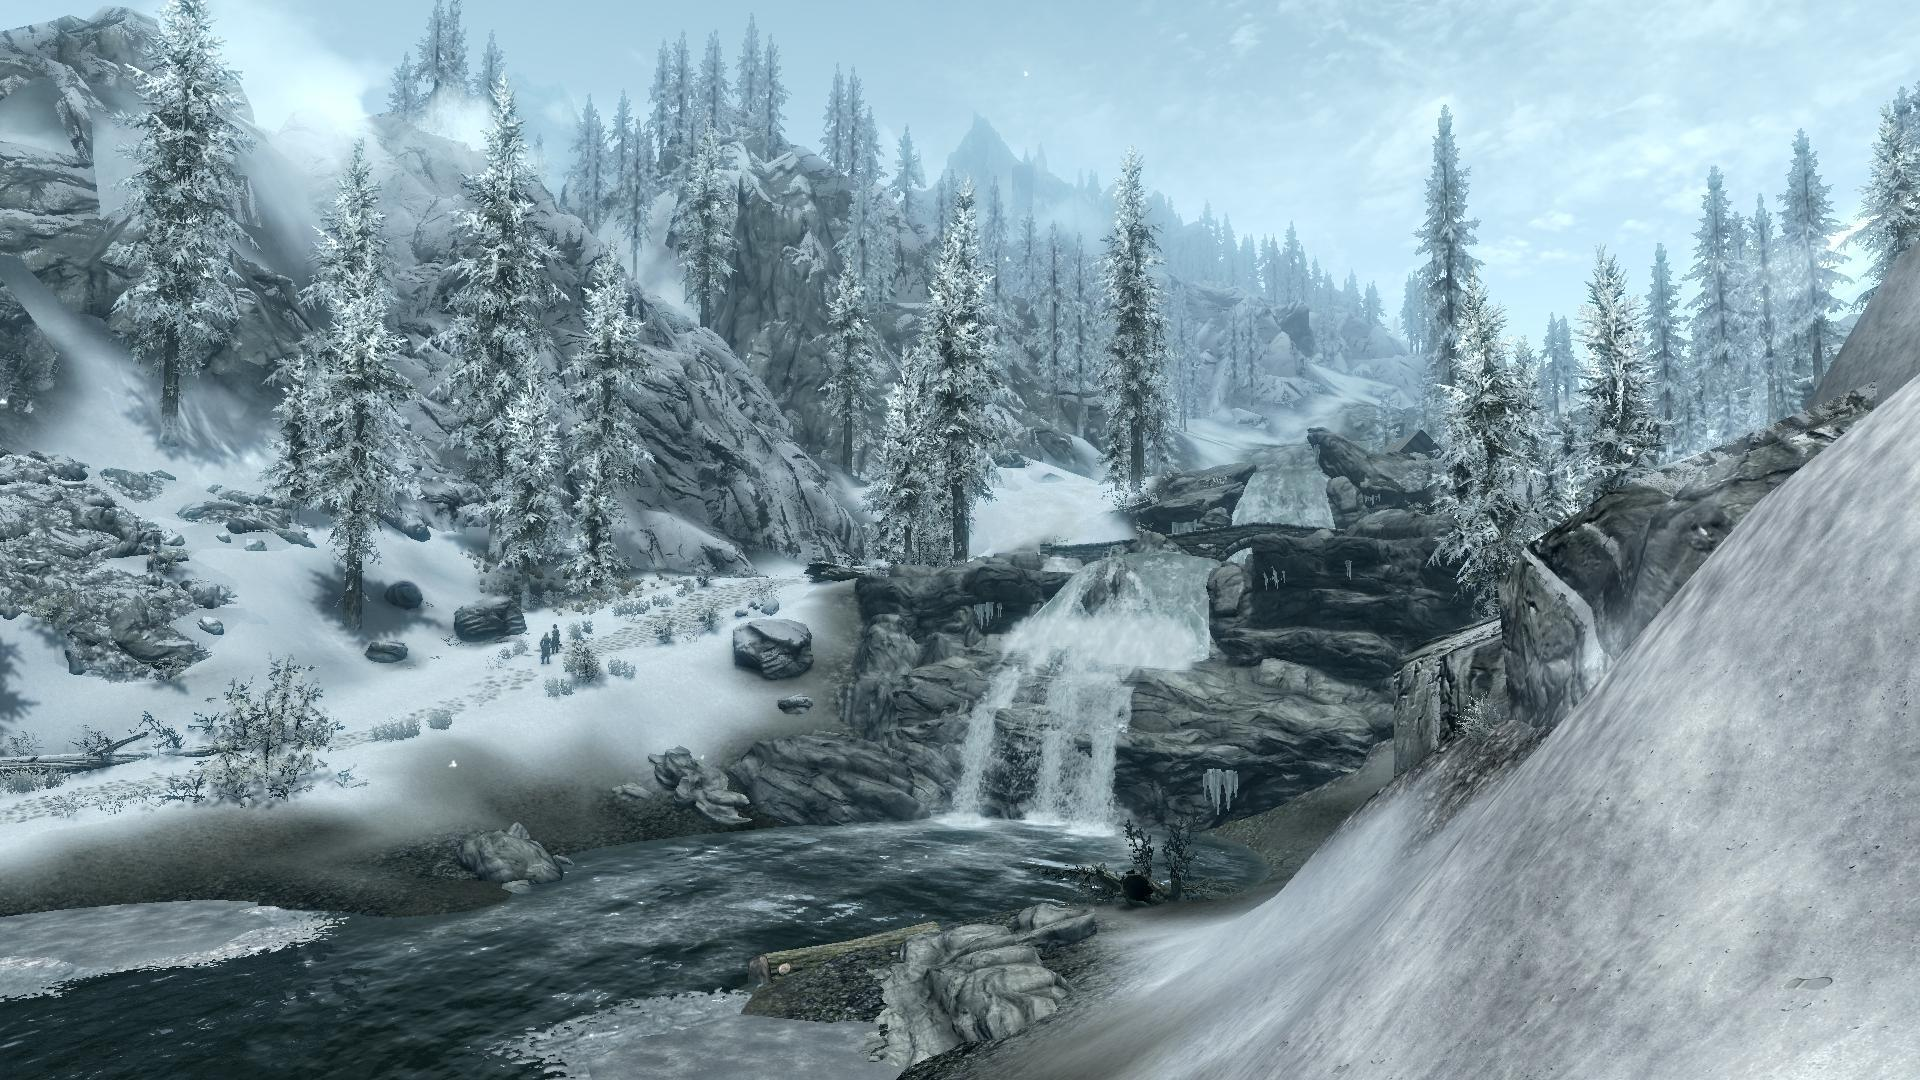 Lonely Girl Hd Wallpapers 1080p Skyrim Scenery Wallpapers Wallpaper Cave